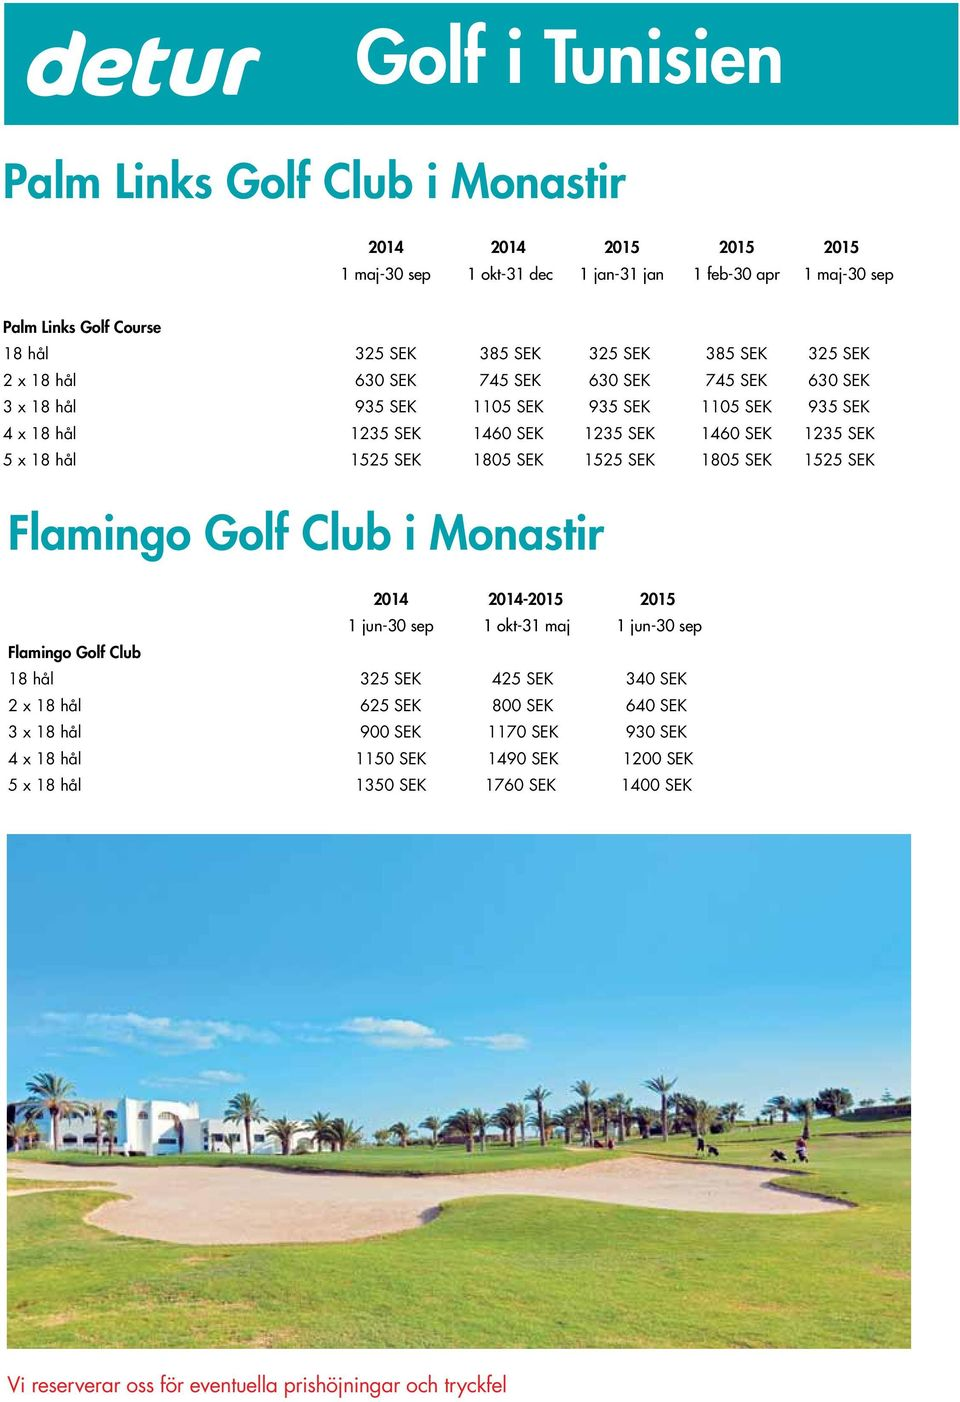 1460 SEK 1235 SEK 5 x 18 hål 1525 SEK 1805 SEK 1525 SEK 1805 SEK 1525 SEK Flamingo Golf Club i Monastir 2014 2014-2015 2015 1 jun-30 sep 1 okt-31 maj 1 jun-30 sep Flamingo Golf